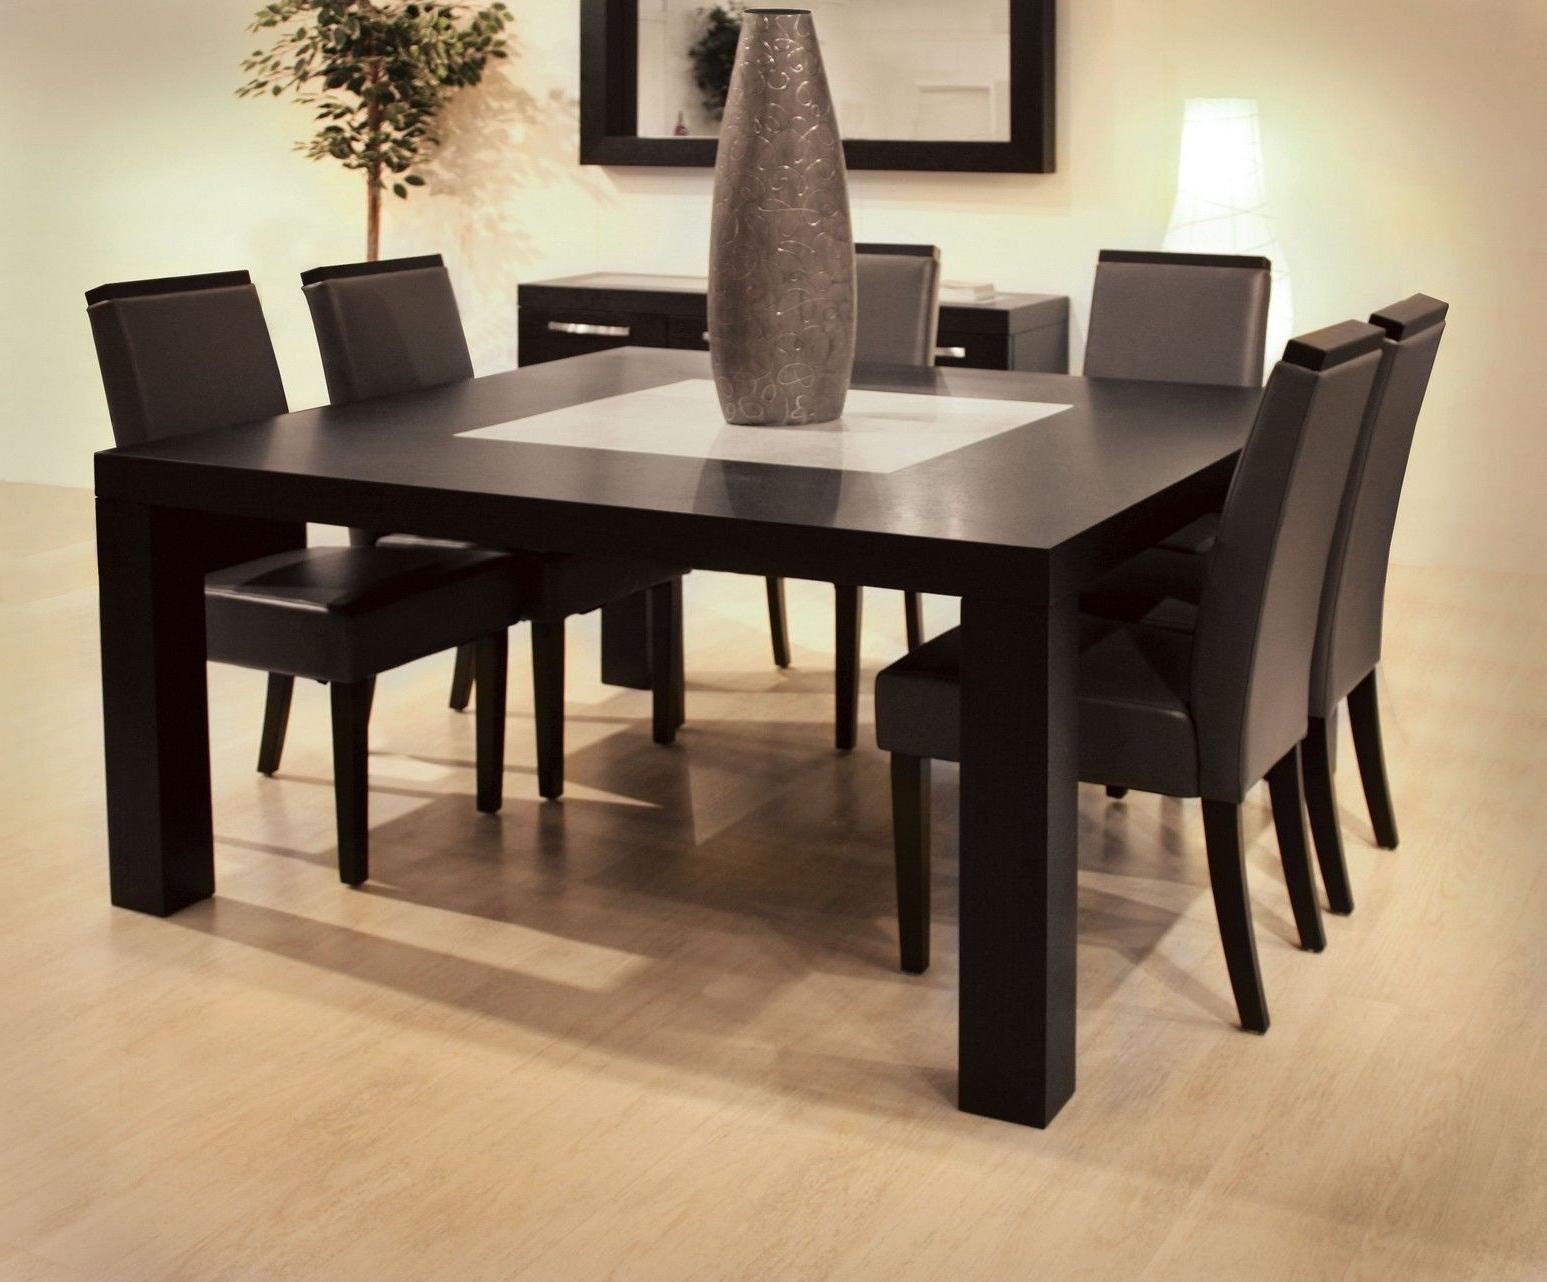 Dark Wood Square Dining Tables With Regard To 2017 Finding The Perfect Kitchen Table For Your Needs – Kitchen Ideas (View 5 of 25)